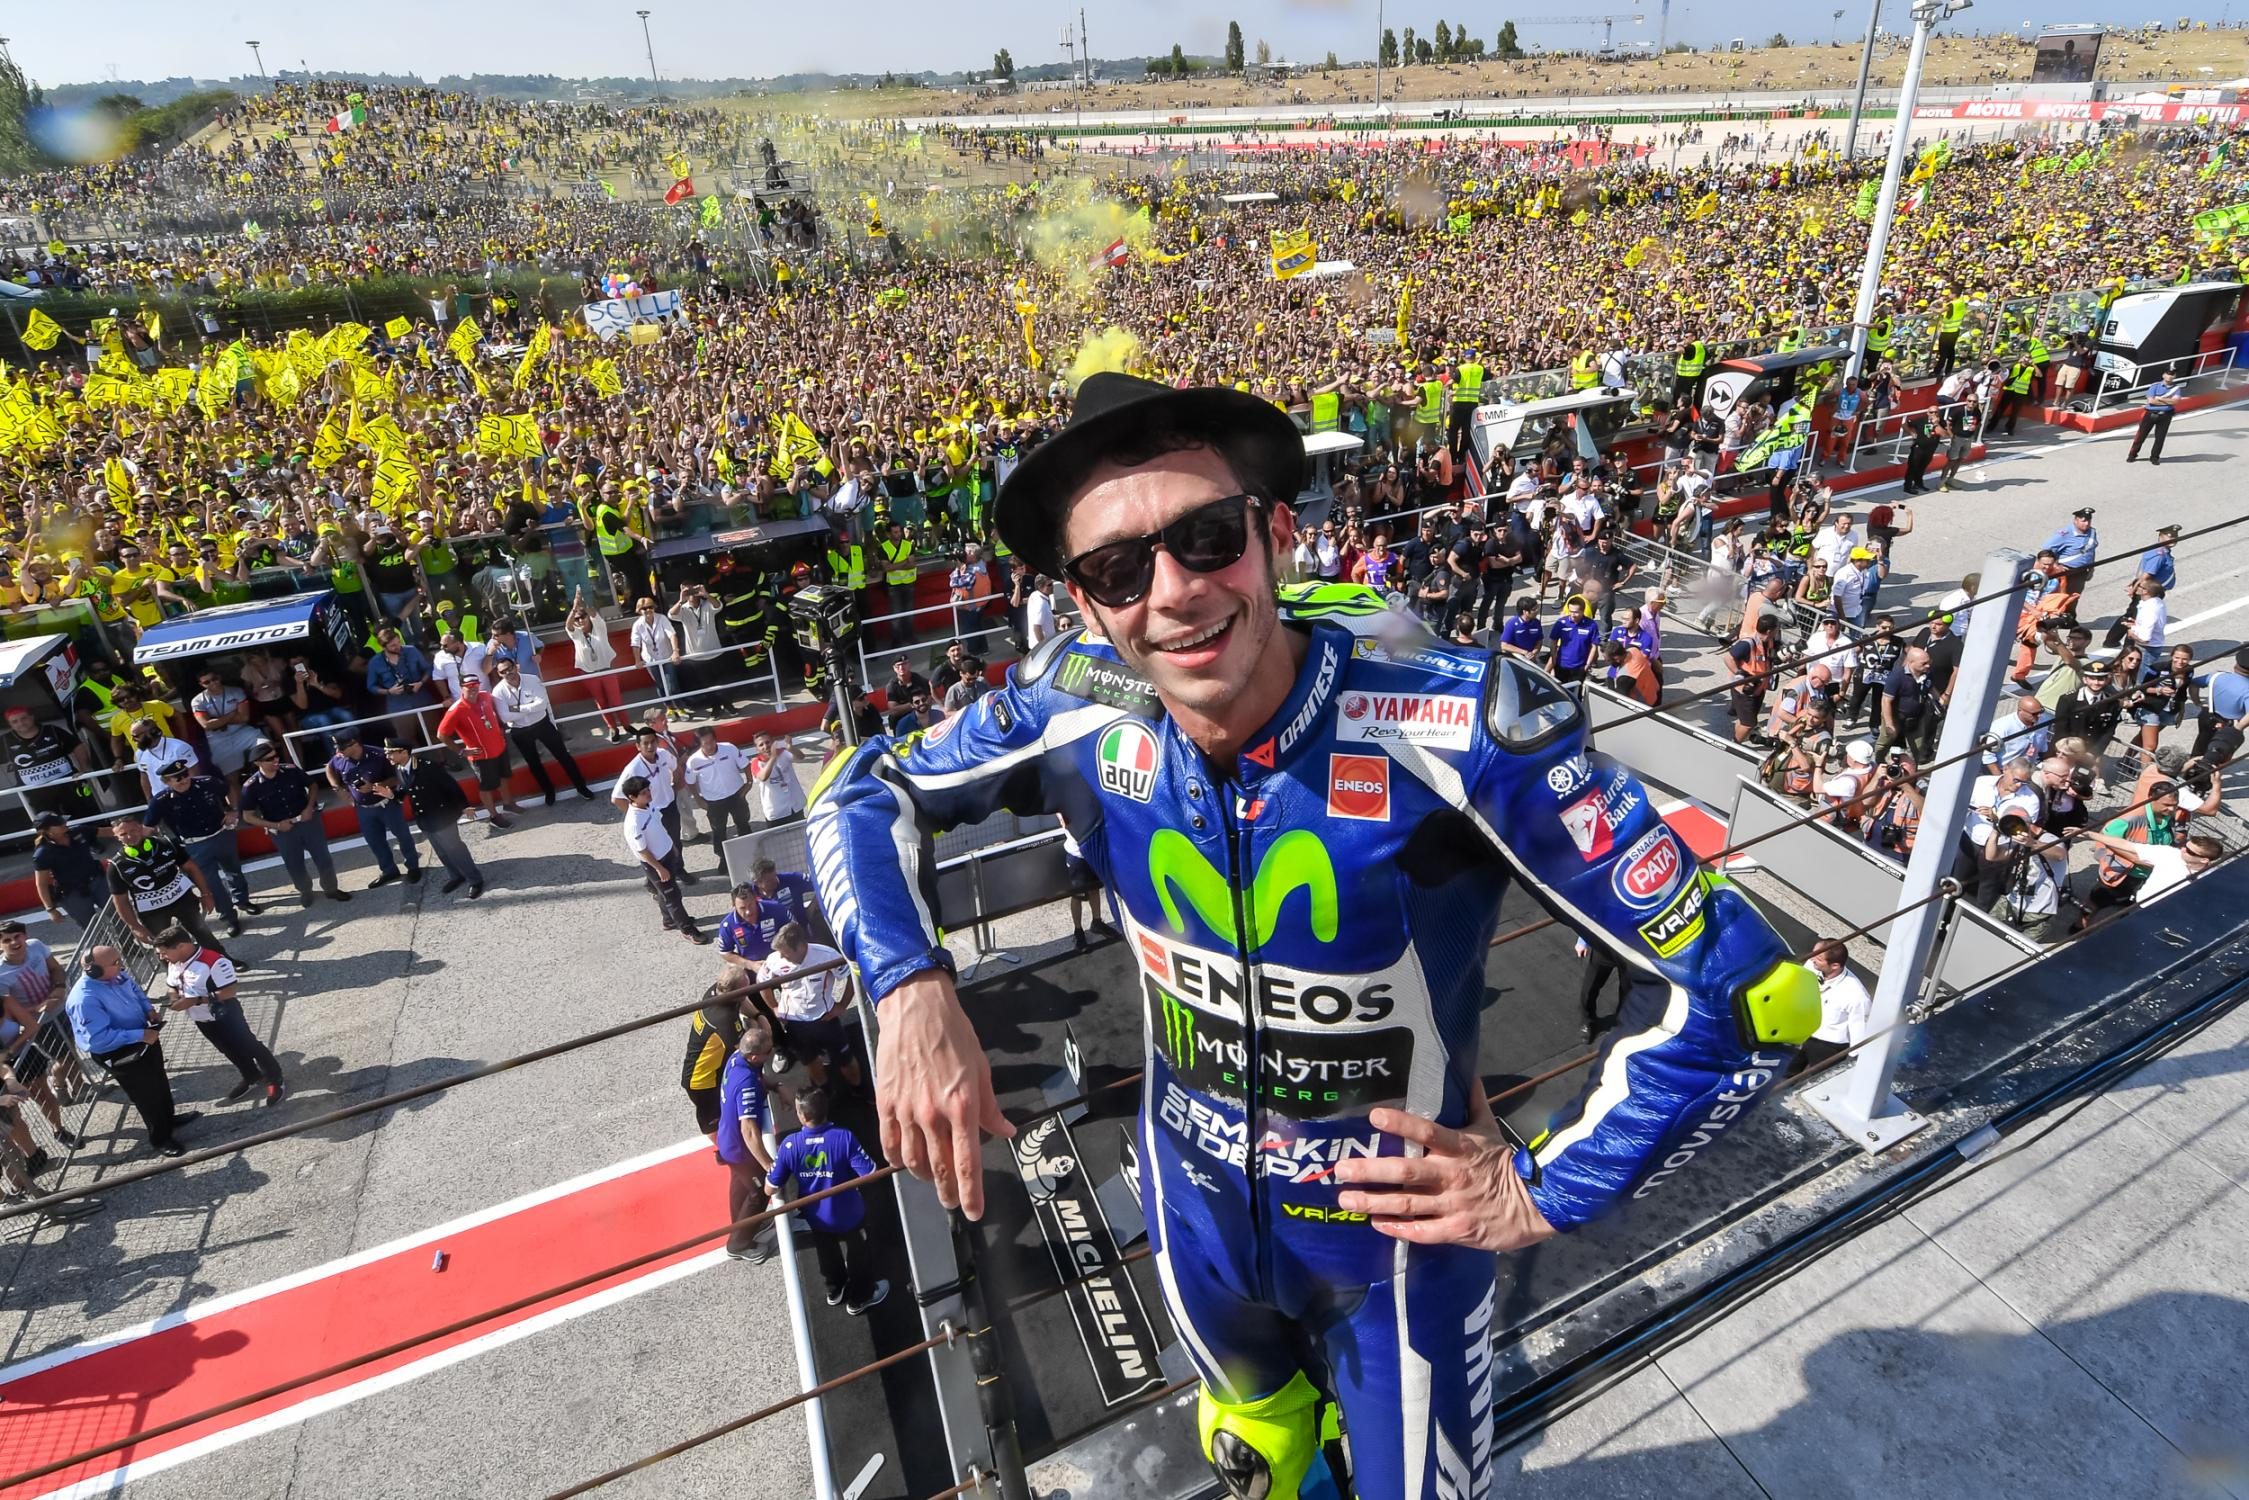 MISSION QUASIMENT IMPOSSIBLE POUR ROSSI